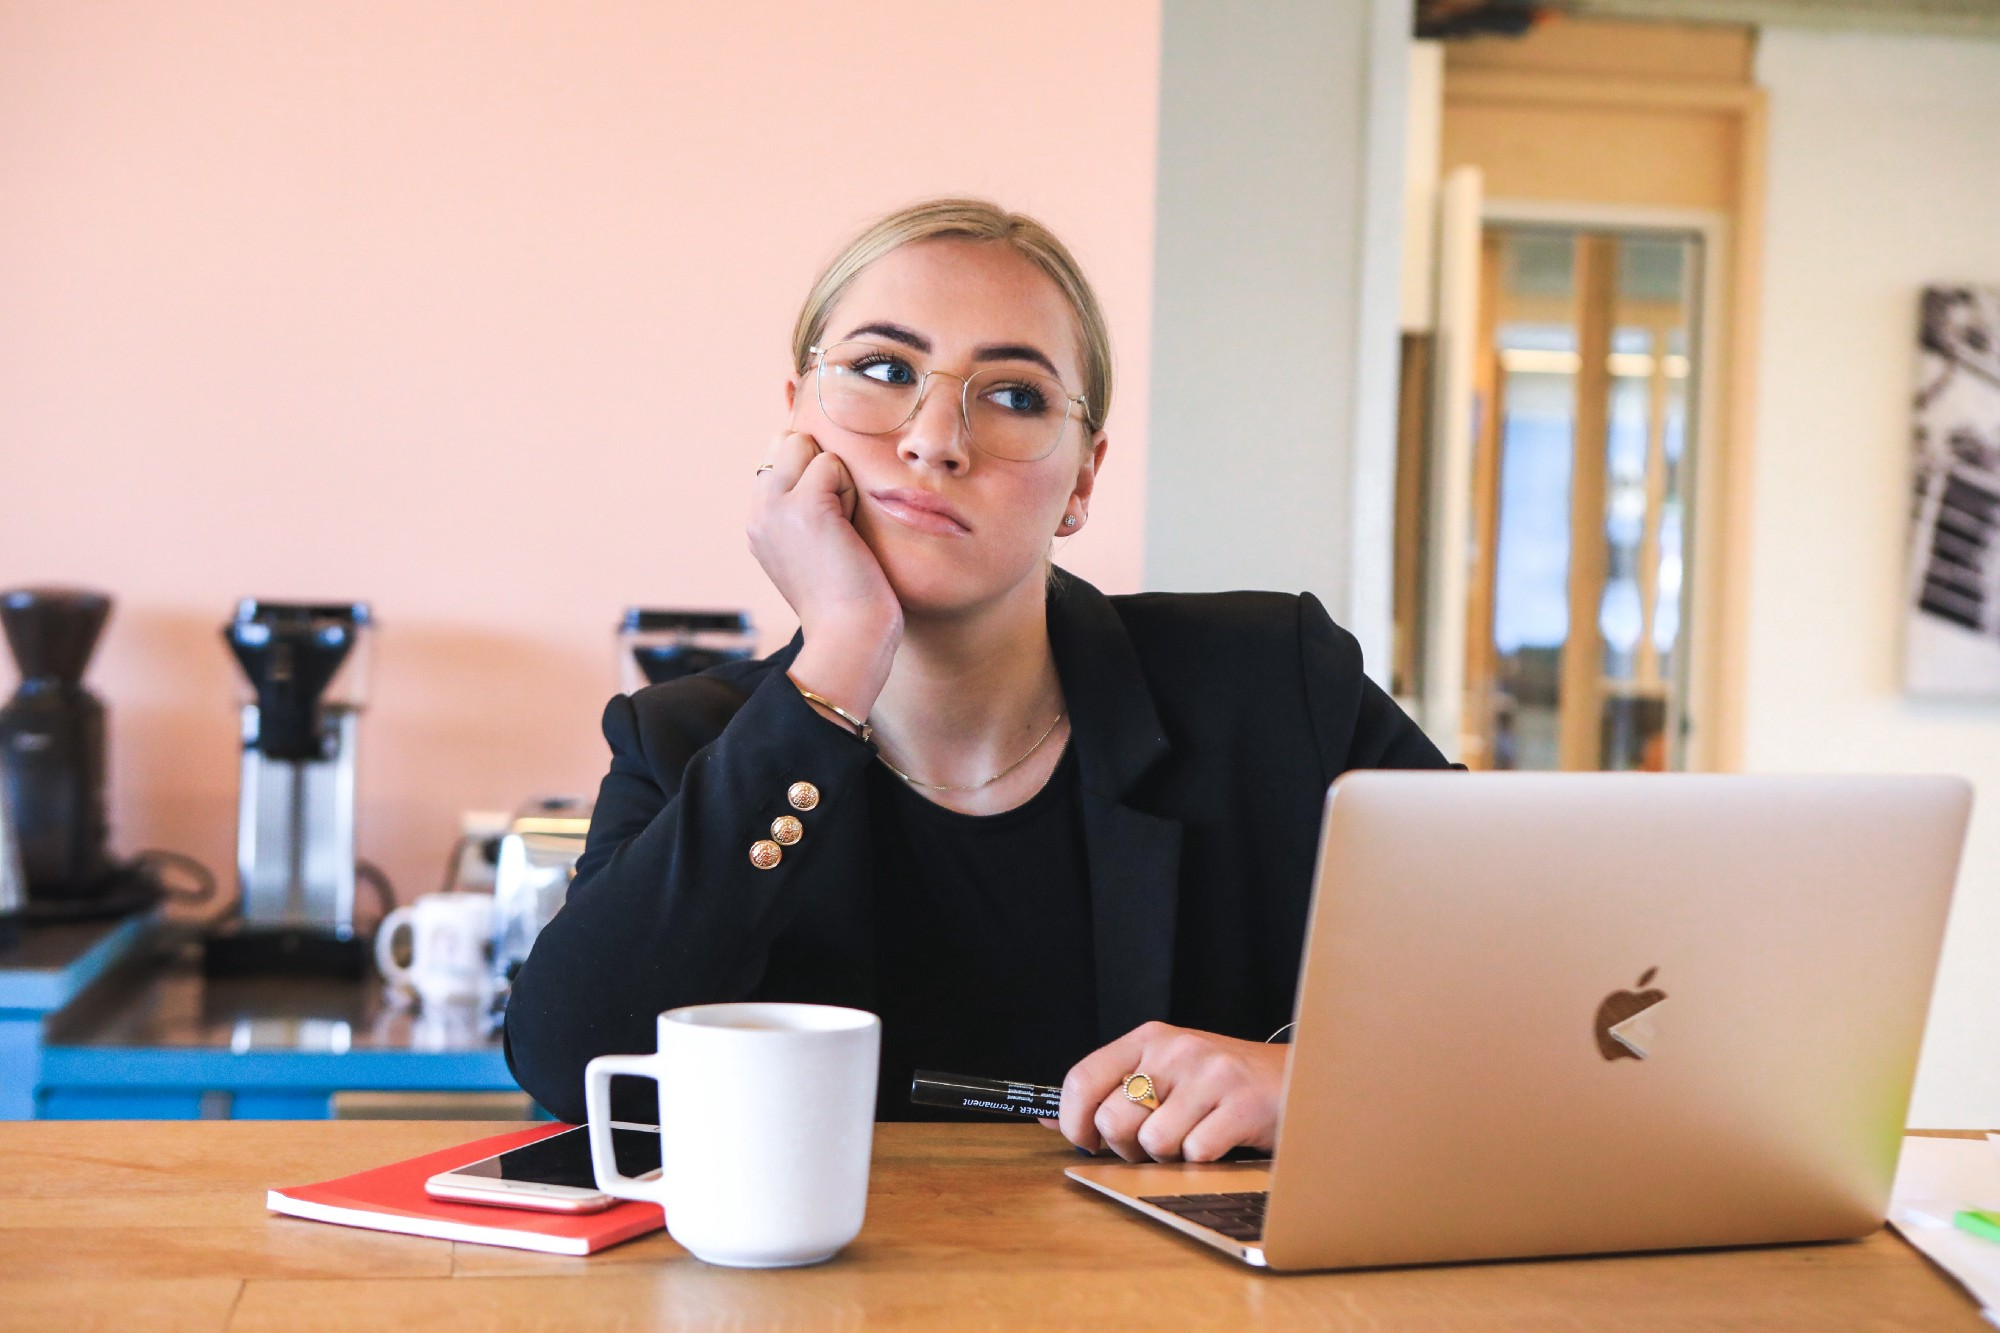 Confused lady with a laptop and coffee mug on the table. Image credits: Unsplash